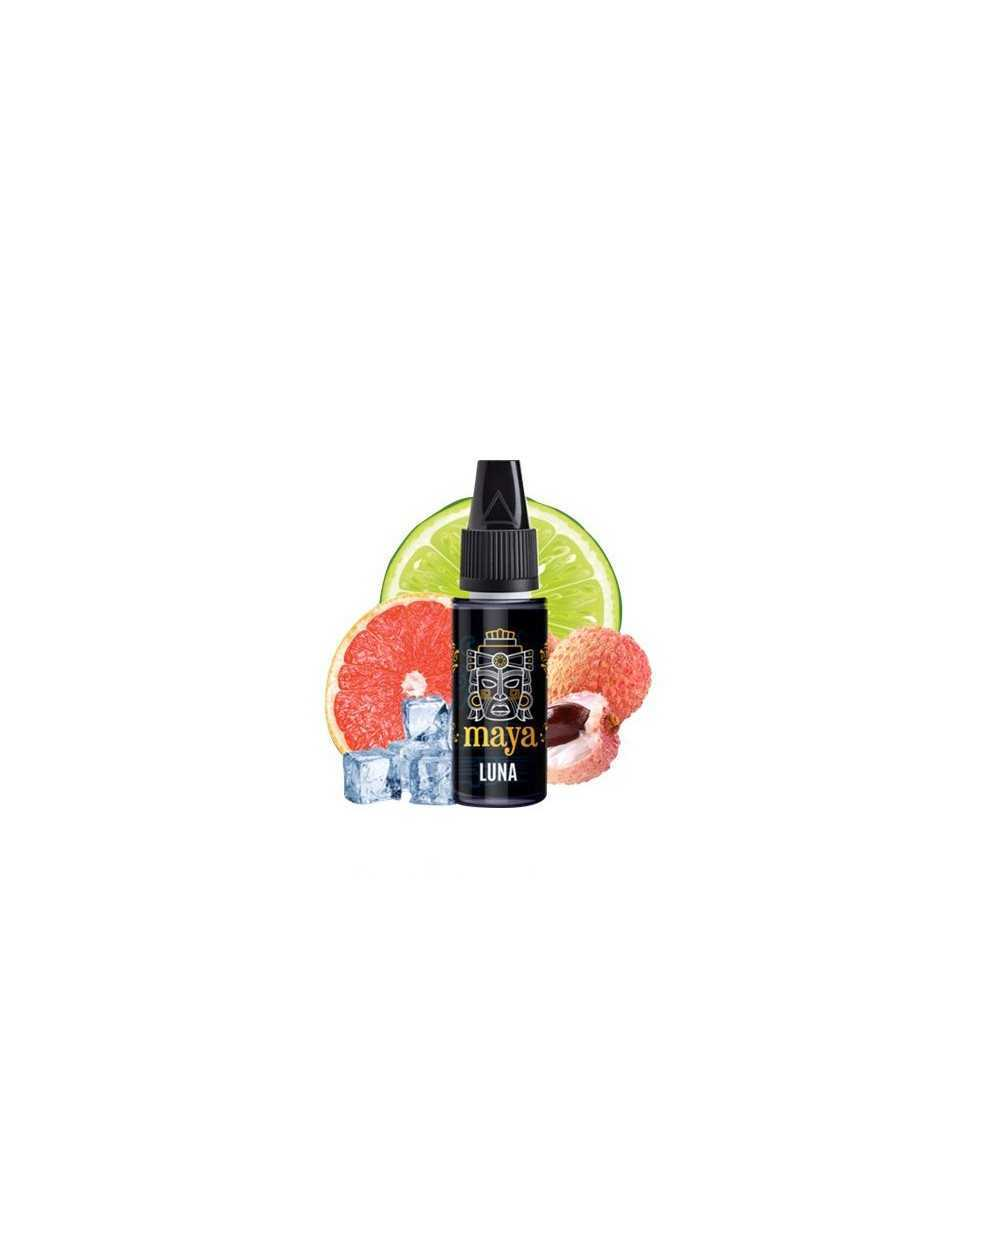 Concentrate Luna 10ml - Maya by Full Moon-1